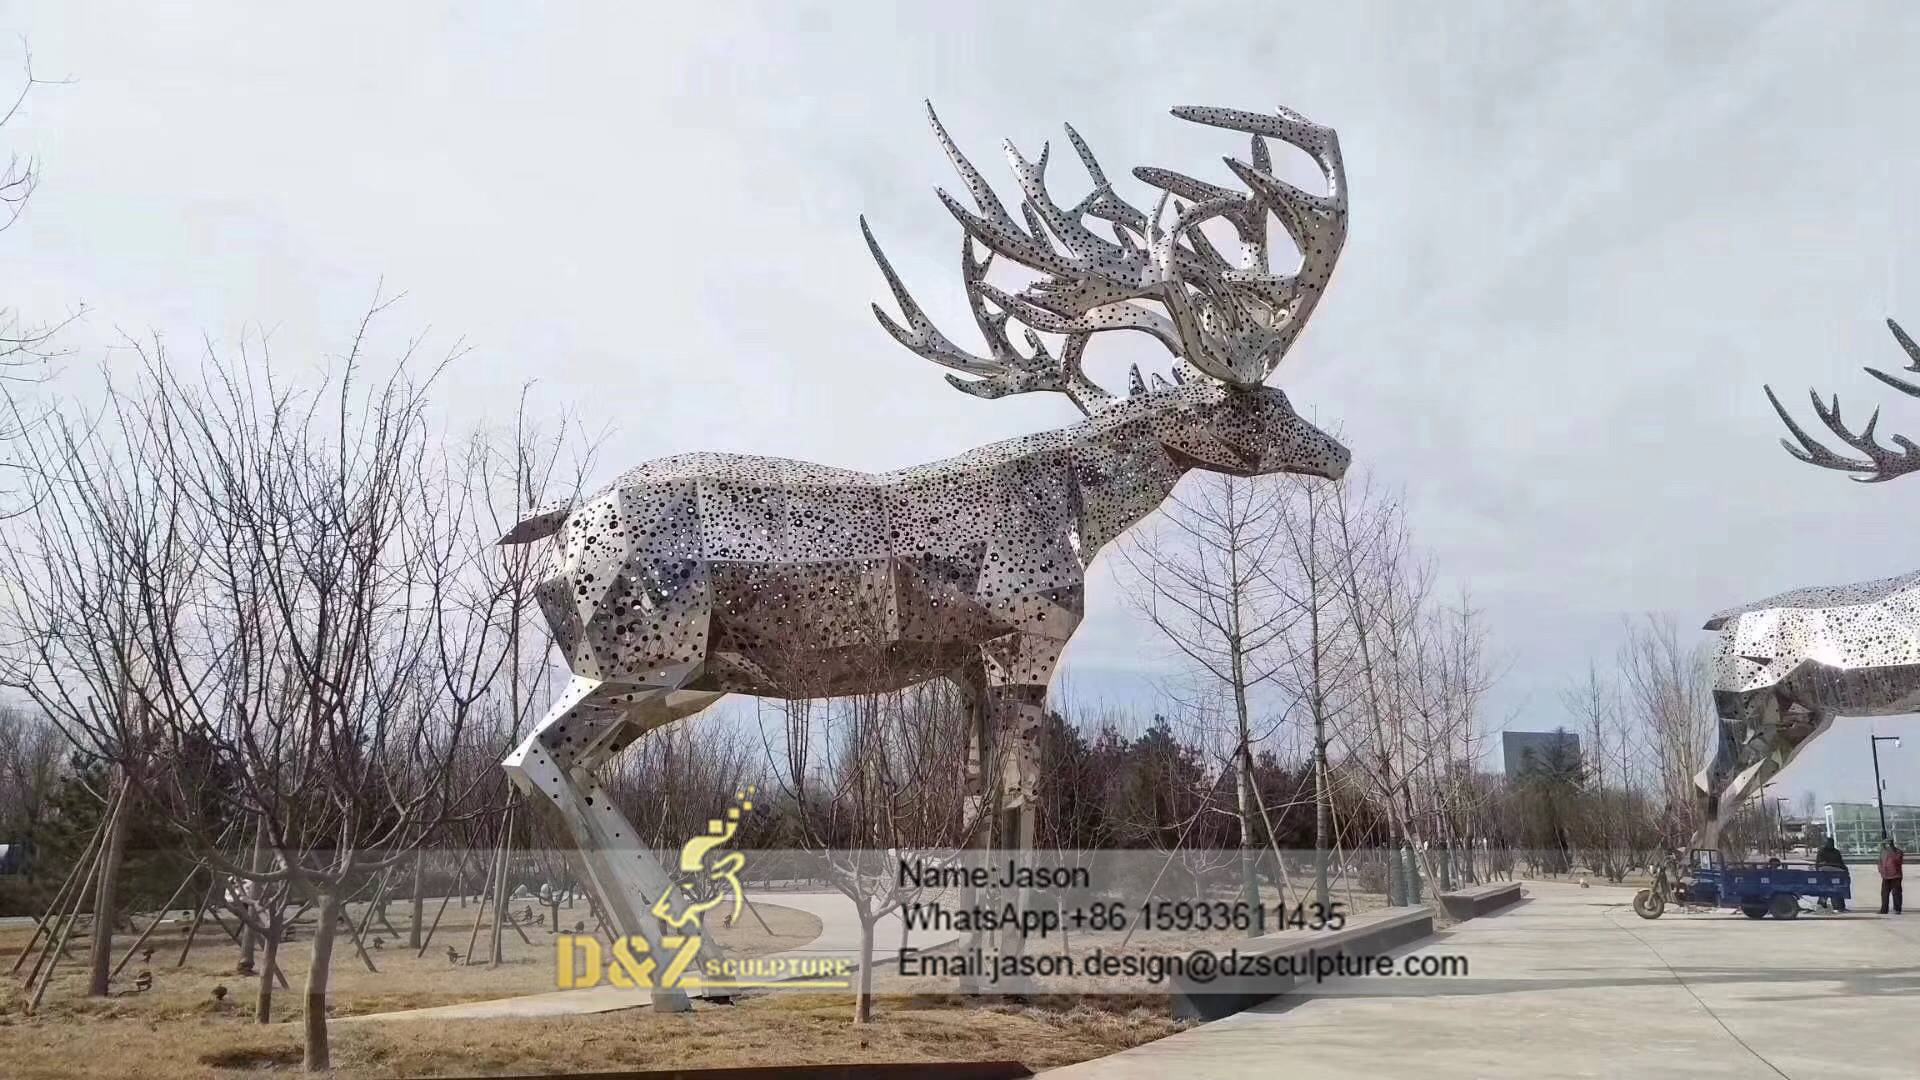 Stainless moose Sculpture